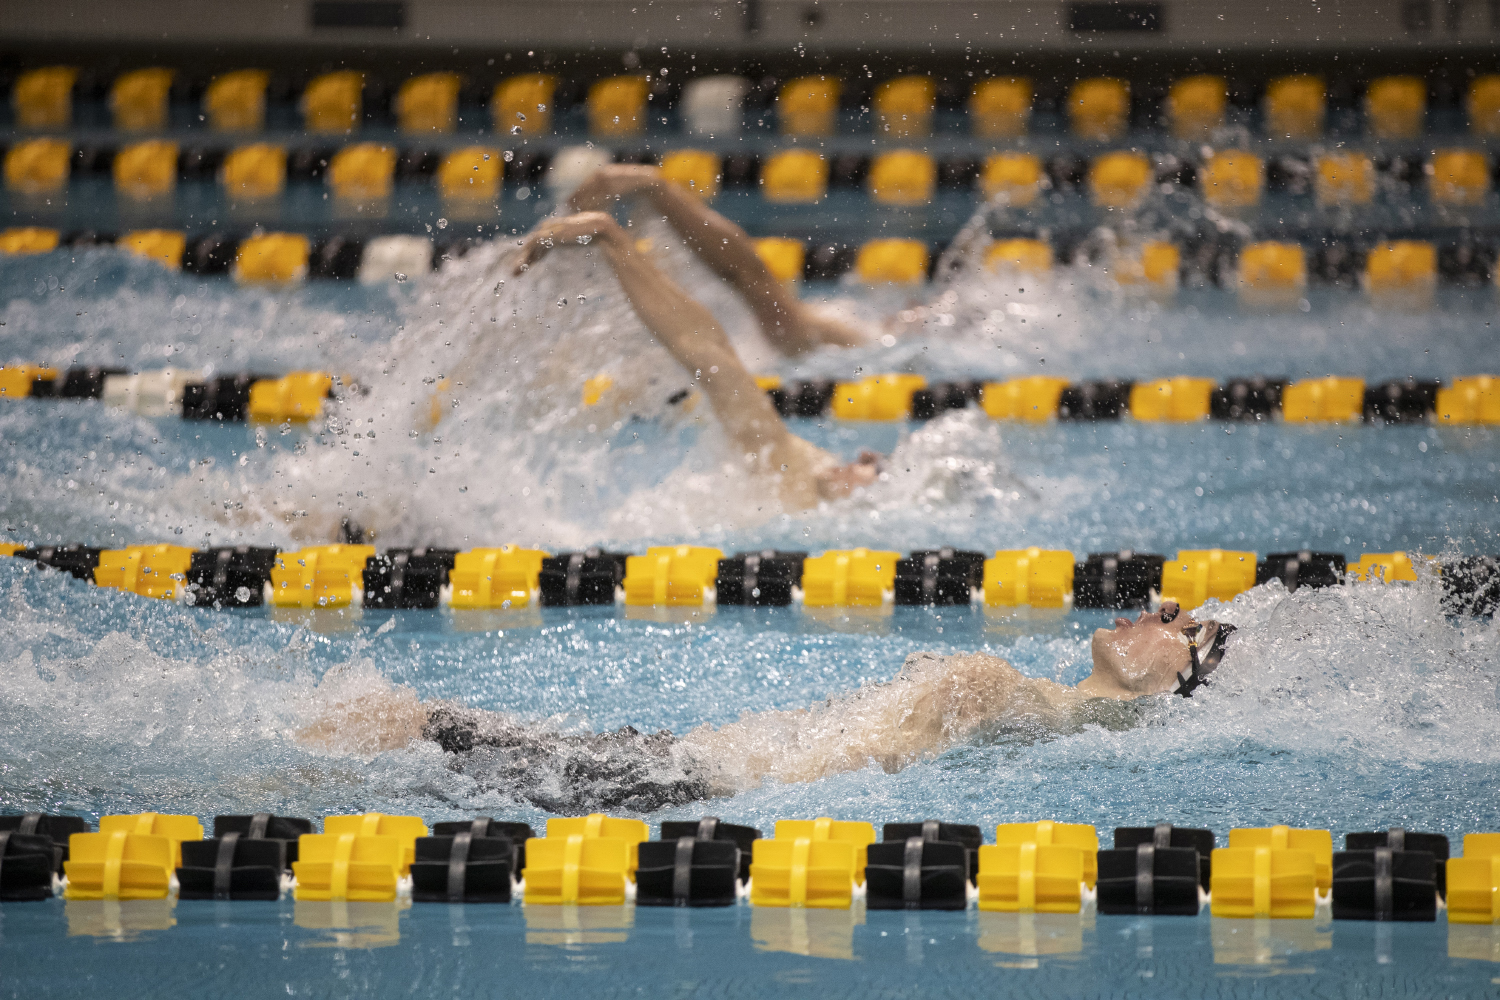 Ryan+Gridley+from+Northwestern+University+competes+in+the+Men%27s+400+Medley+Relay+during+the+second+day+of+the+2019+Big+Ten+Men%27s+Swimming+and+Diving+Championships+at+the+CRWC+on+Thursday%2C+February+28%2C+2019.+Northwestern+placed+eighth+with+a+time+of+3%3A09%3A98.+Gridley+finished+with+a+time+of+22.36.+